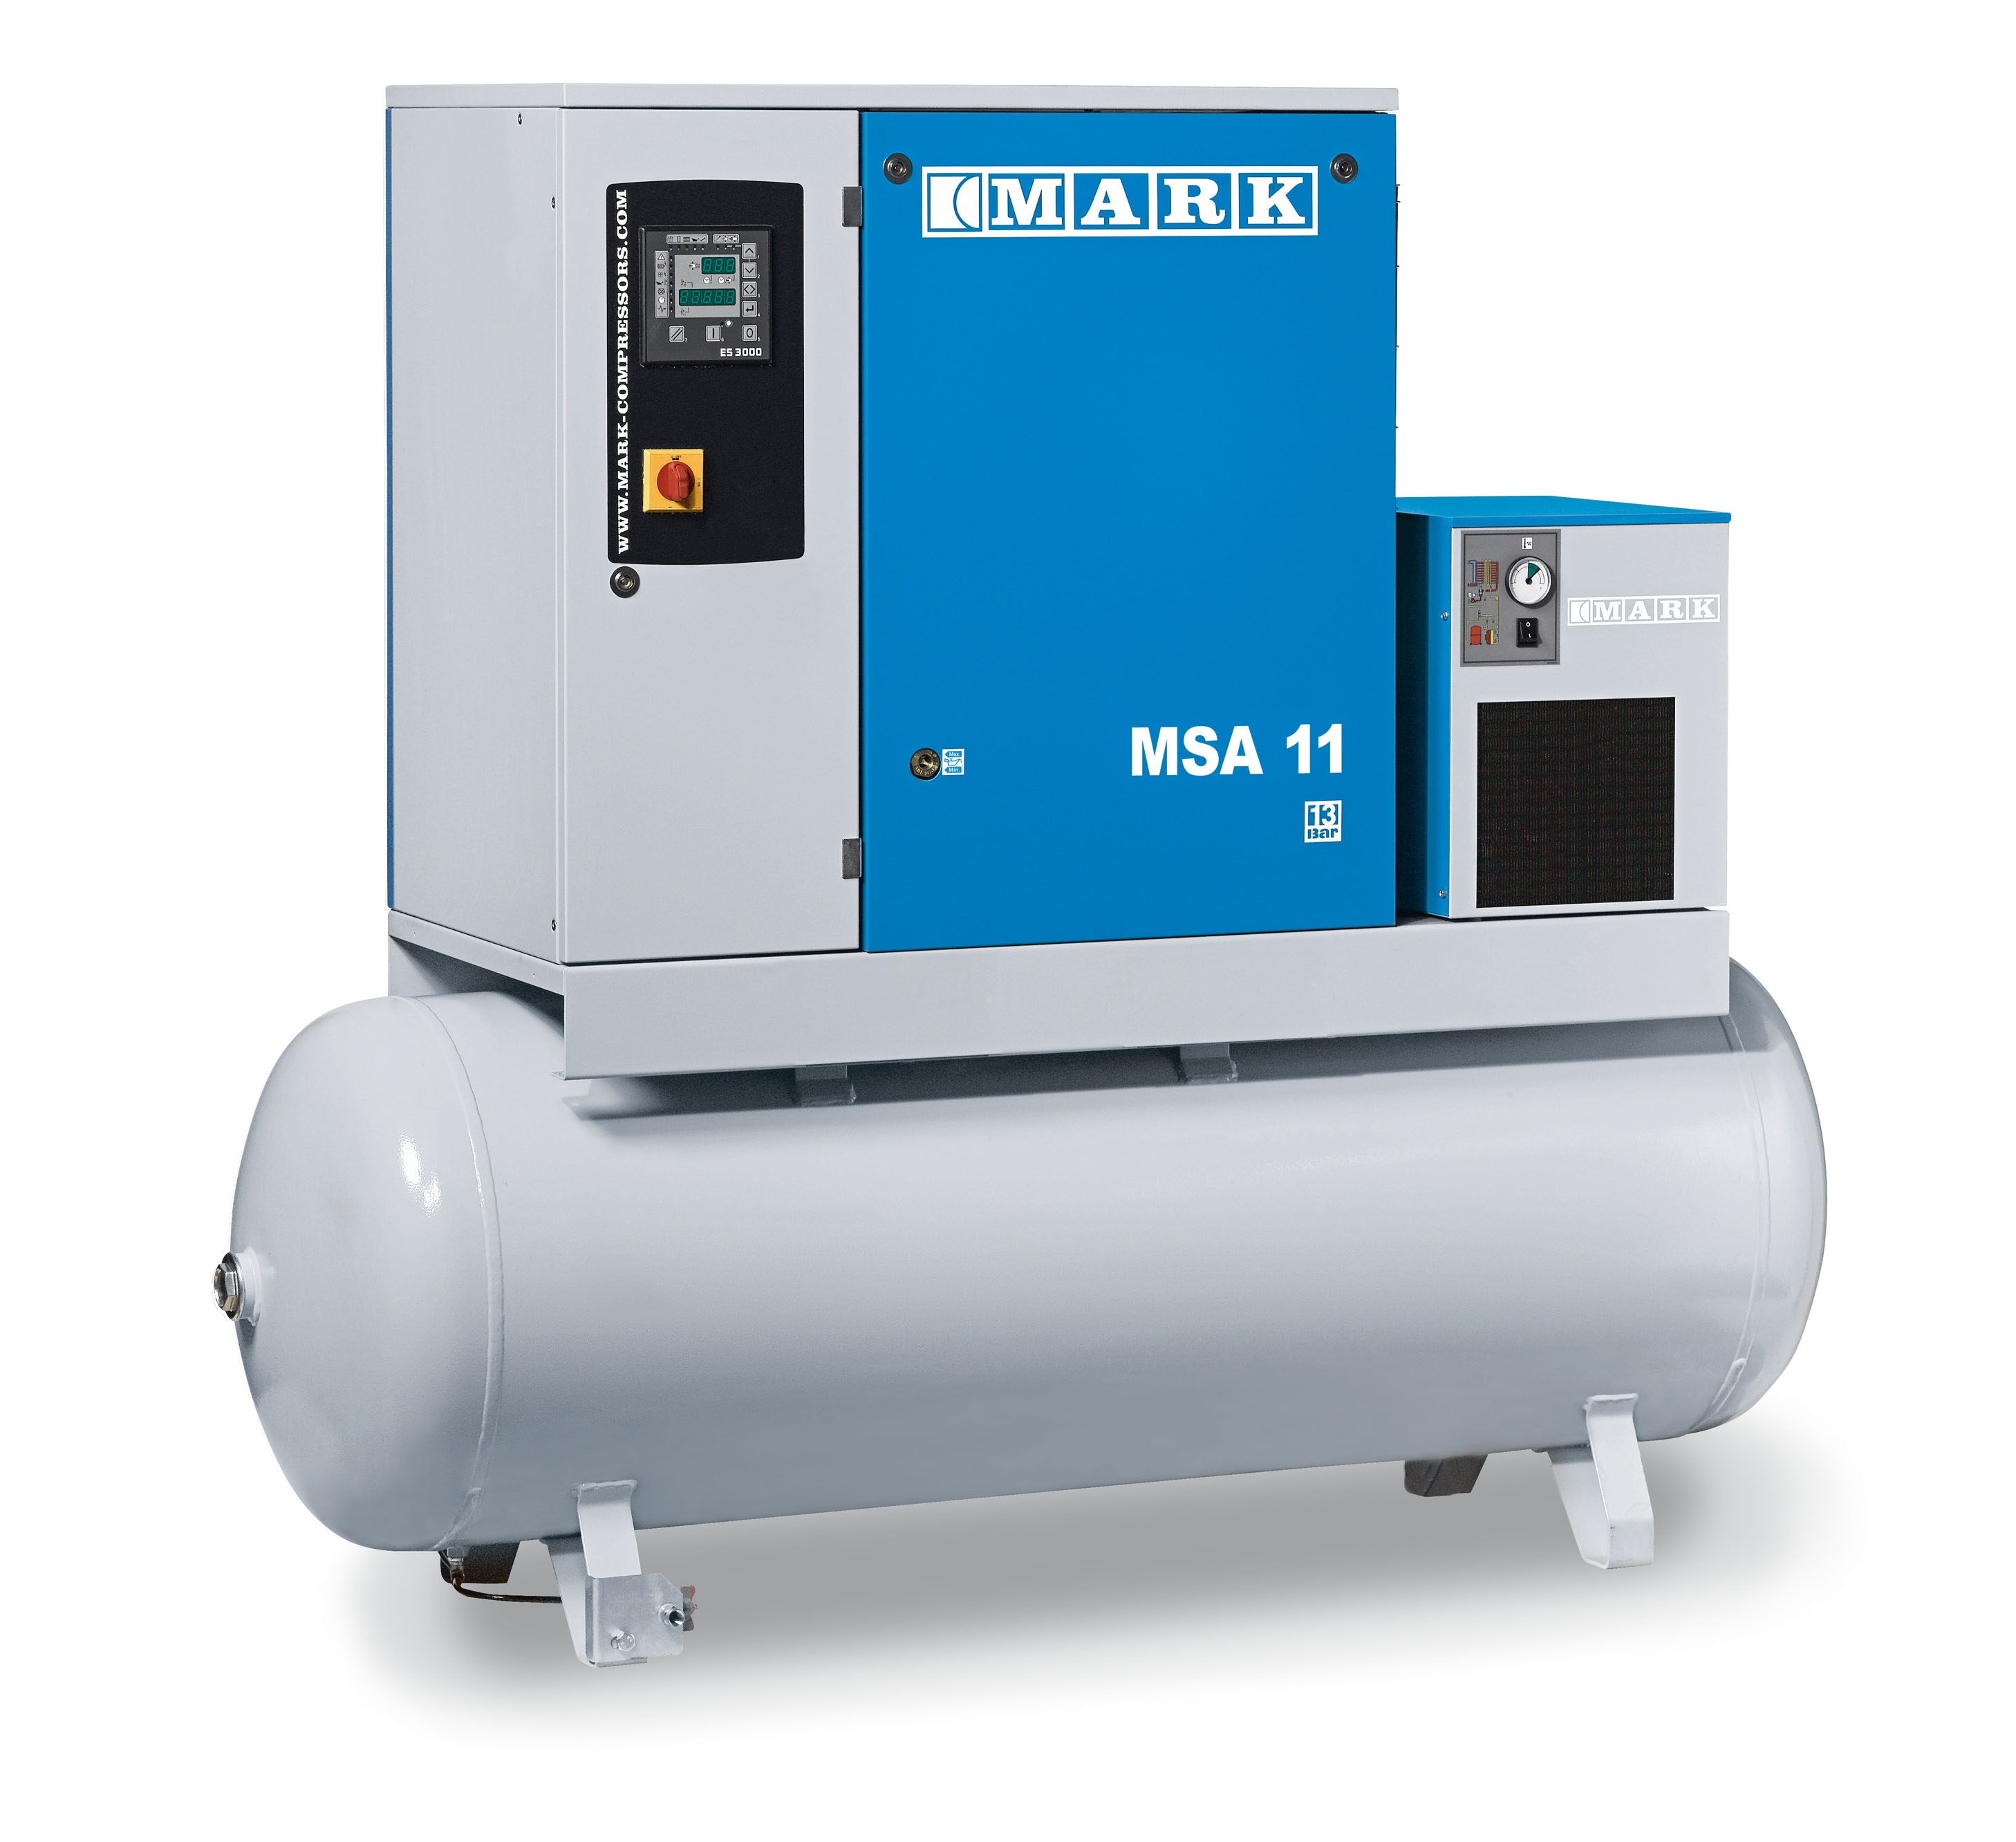 MSA 11 tank + dryer